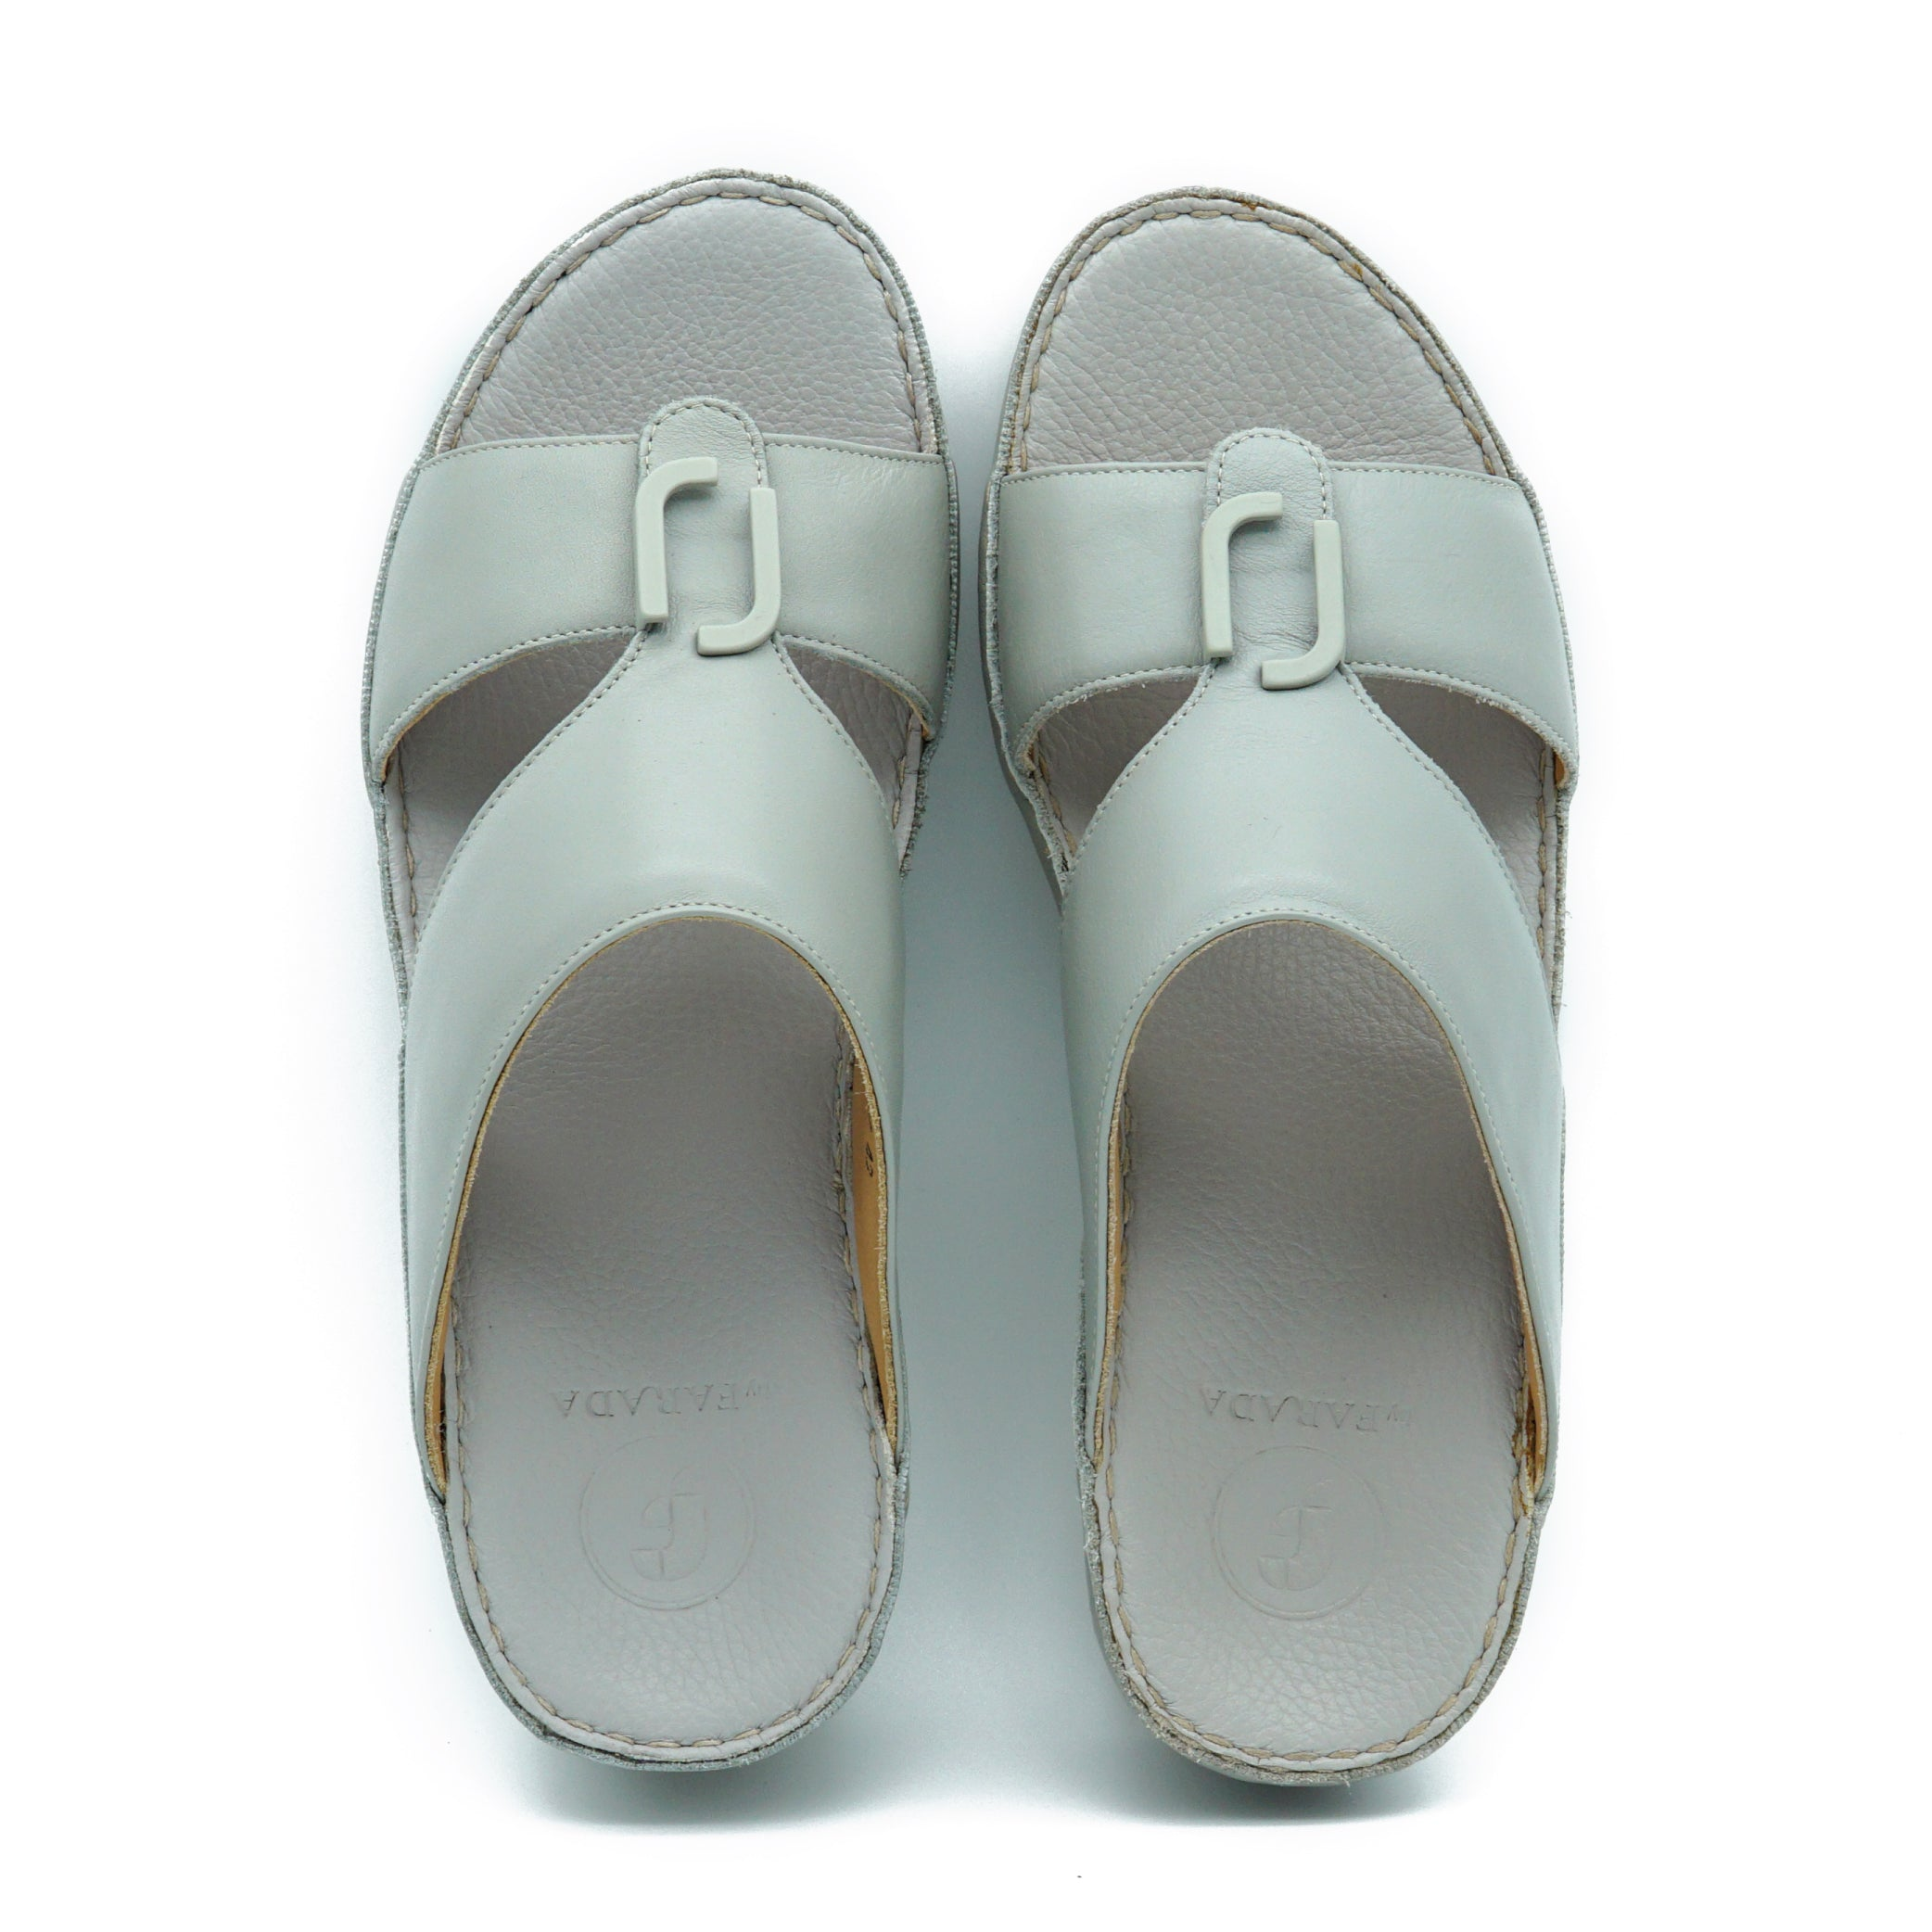 Grey Nappa F Buckle Arabic Sandal (317-25)